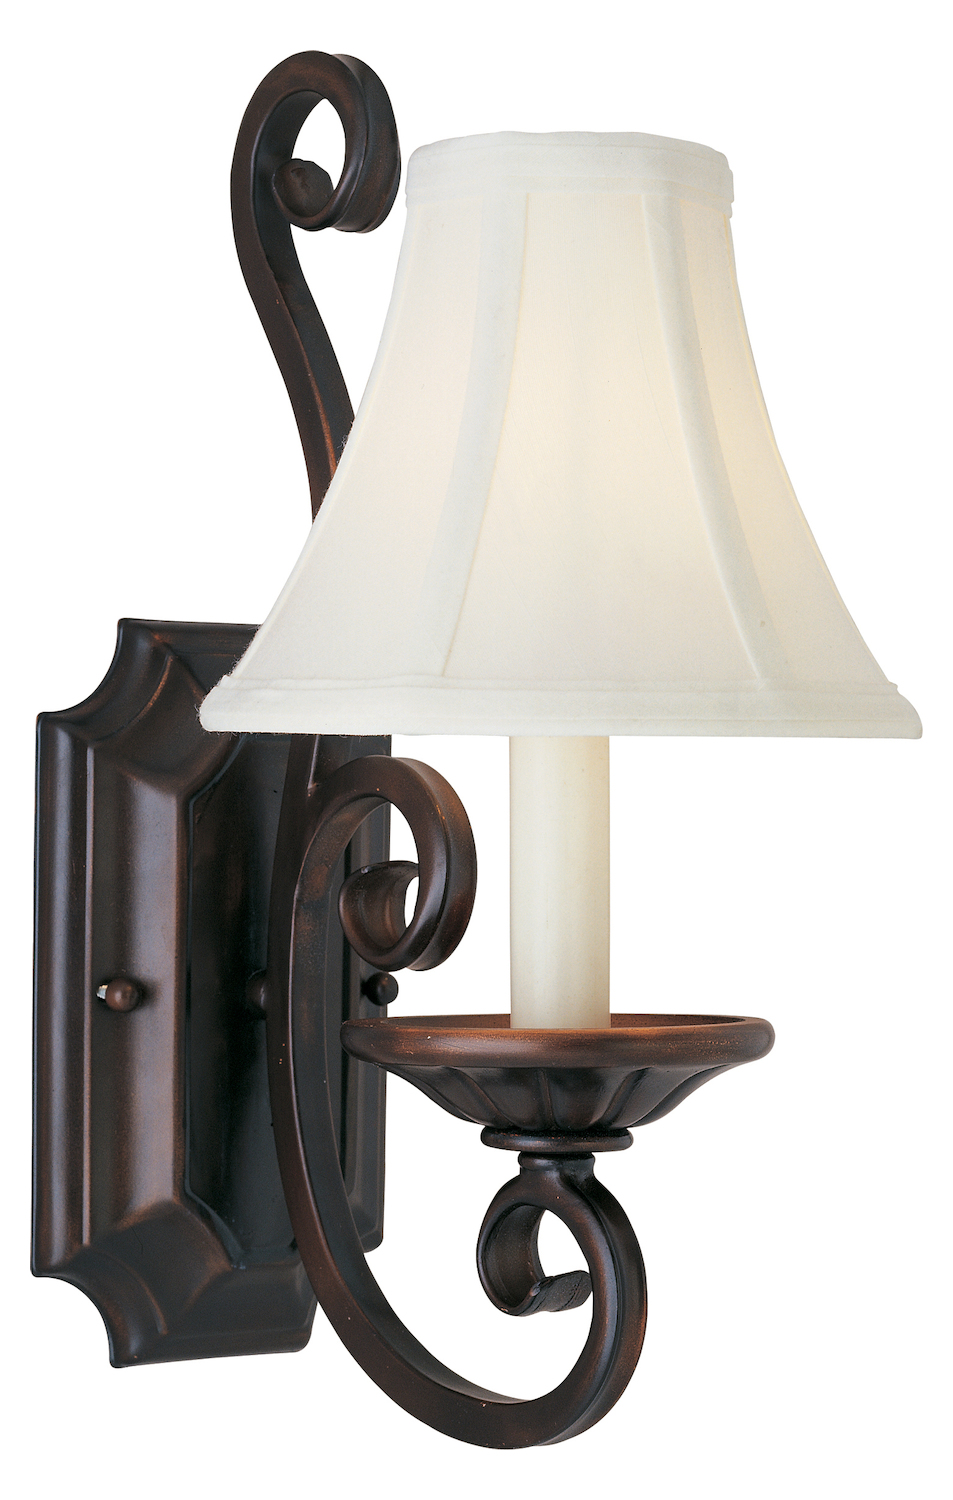 Maxim One Light Oil Rubbed Bronze Wall Light Oil Rubbed Bronze 12217OI/SHD123 From Manor Collection